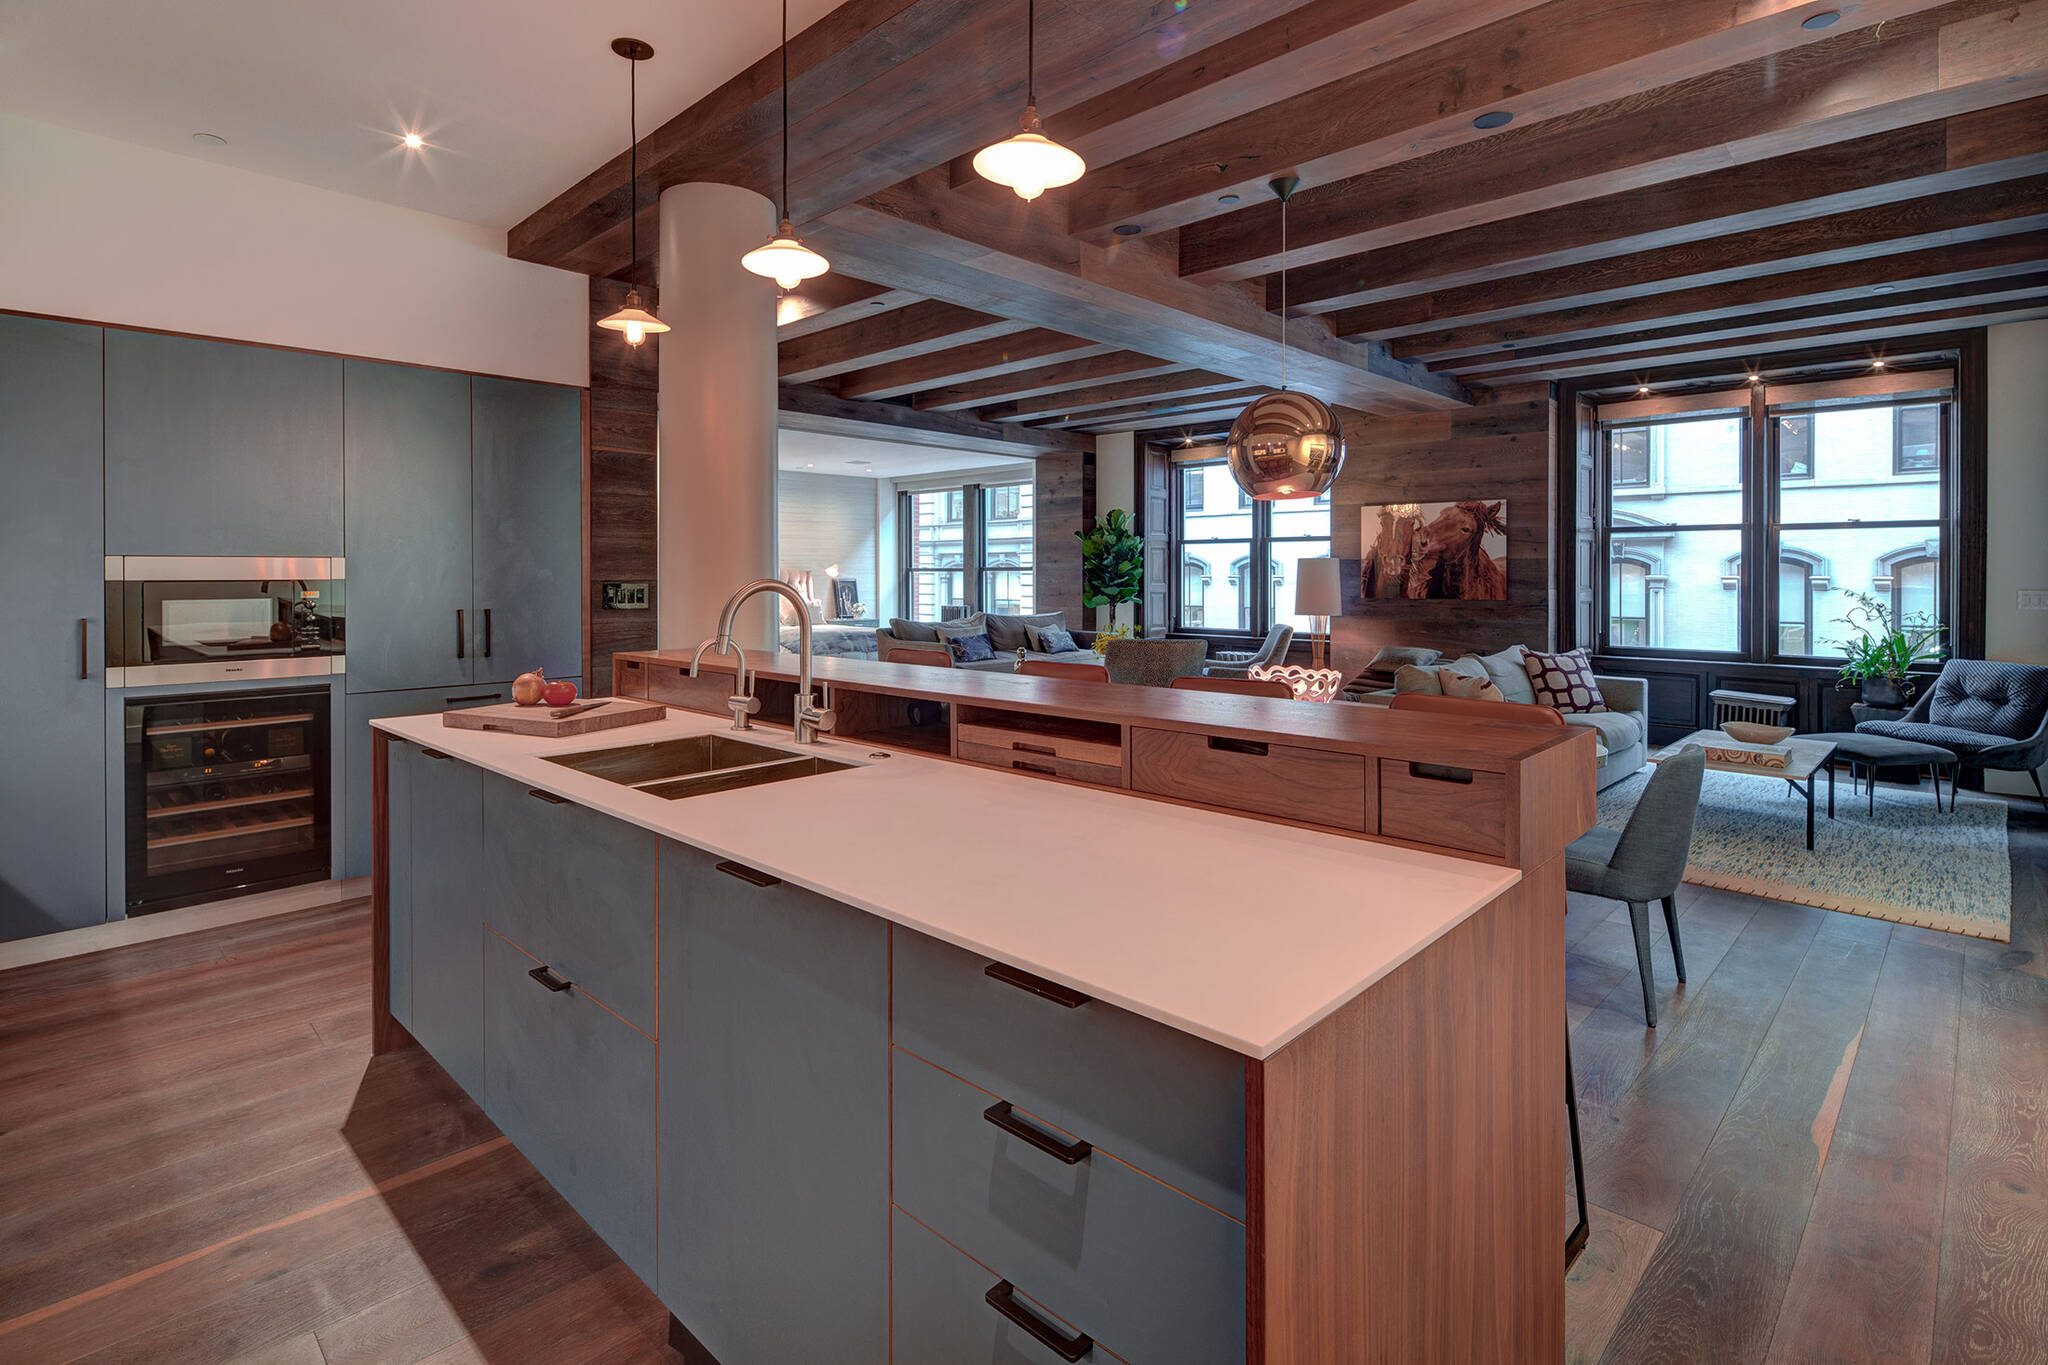 Kitchen of the loft renovation project in Union Square, New York City designed by the architecture studio Danny Forster & Architecture